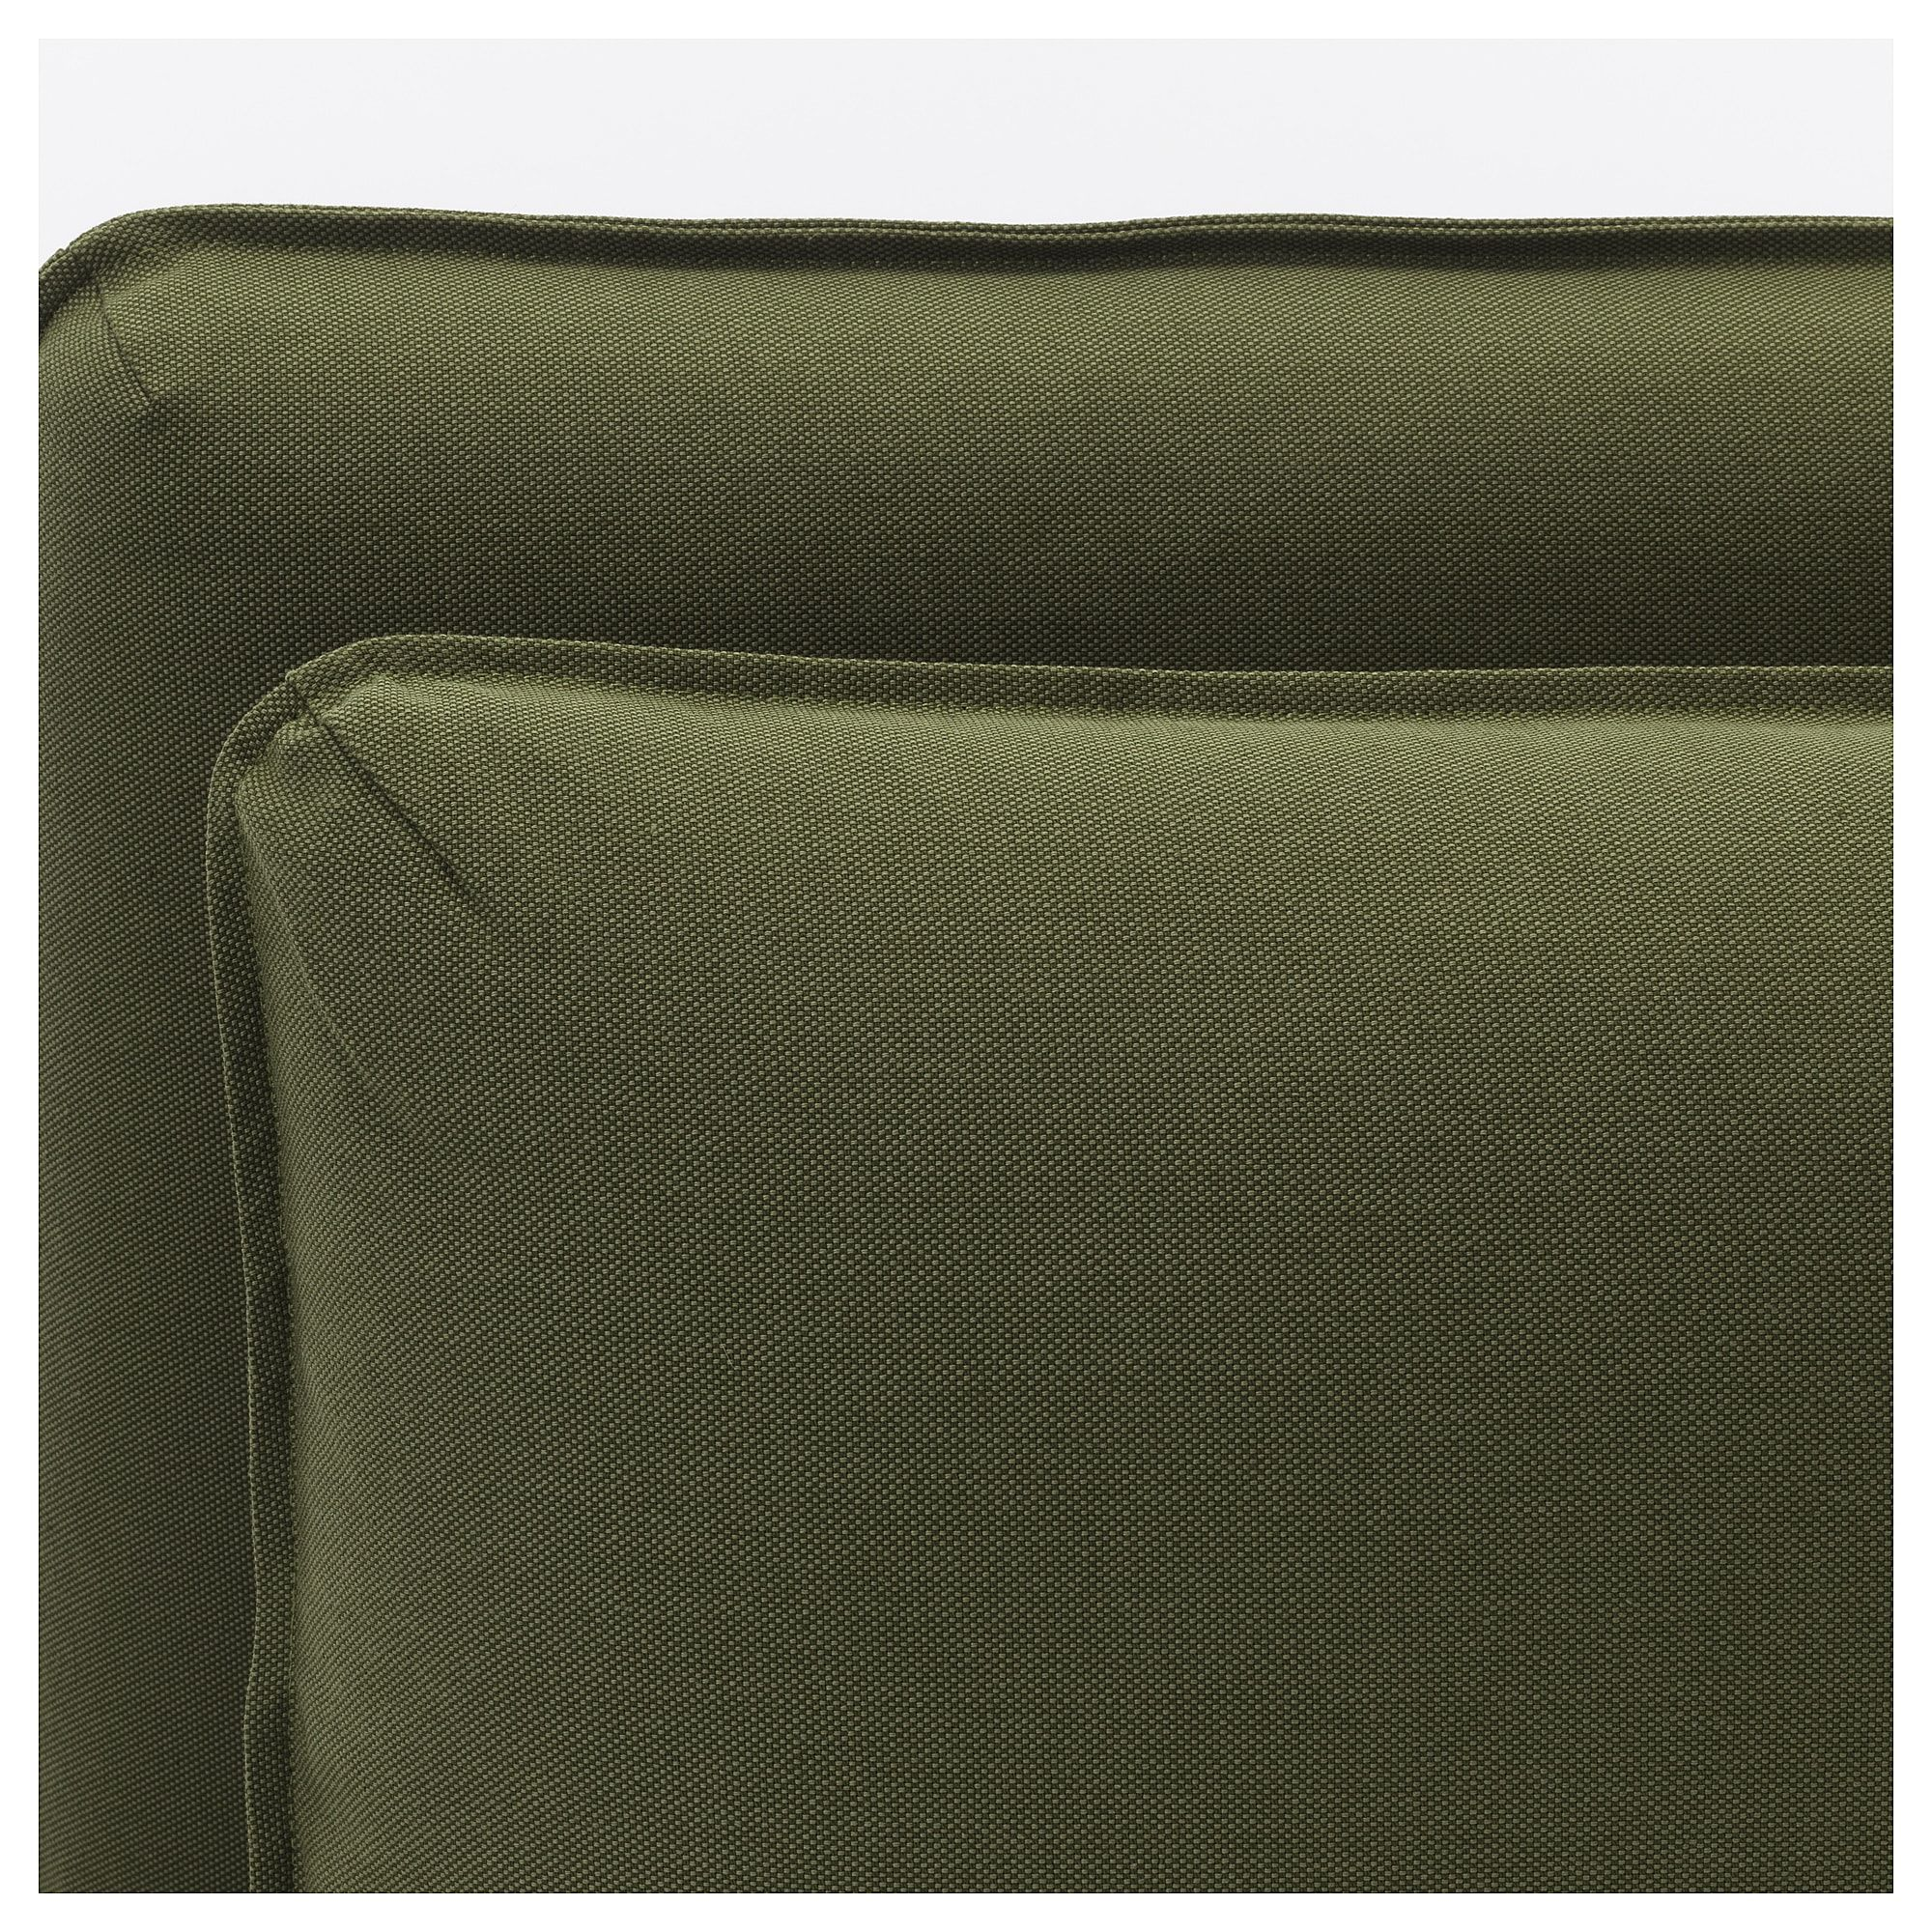 Peachy Ikea Vallentuna Orrsta Olive Green Sectional 1 Seat Lamtechconsult Wood Chair Design Ideas Lamtechconsultcom